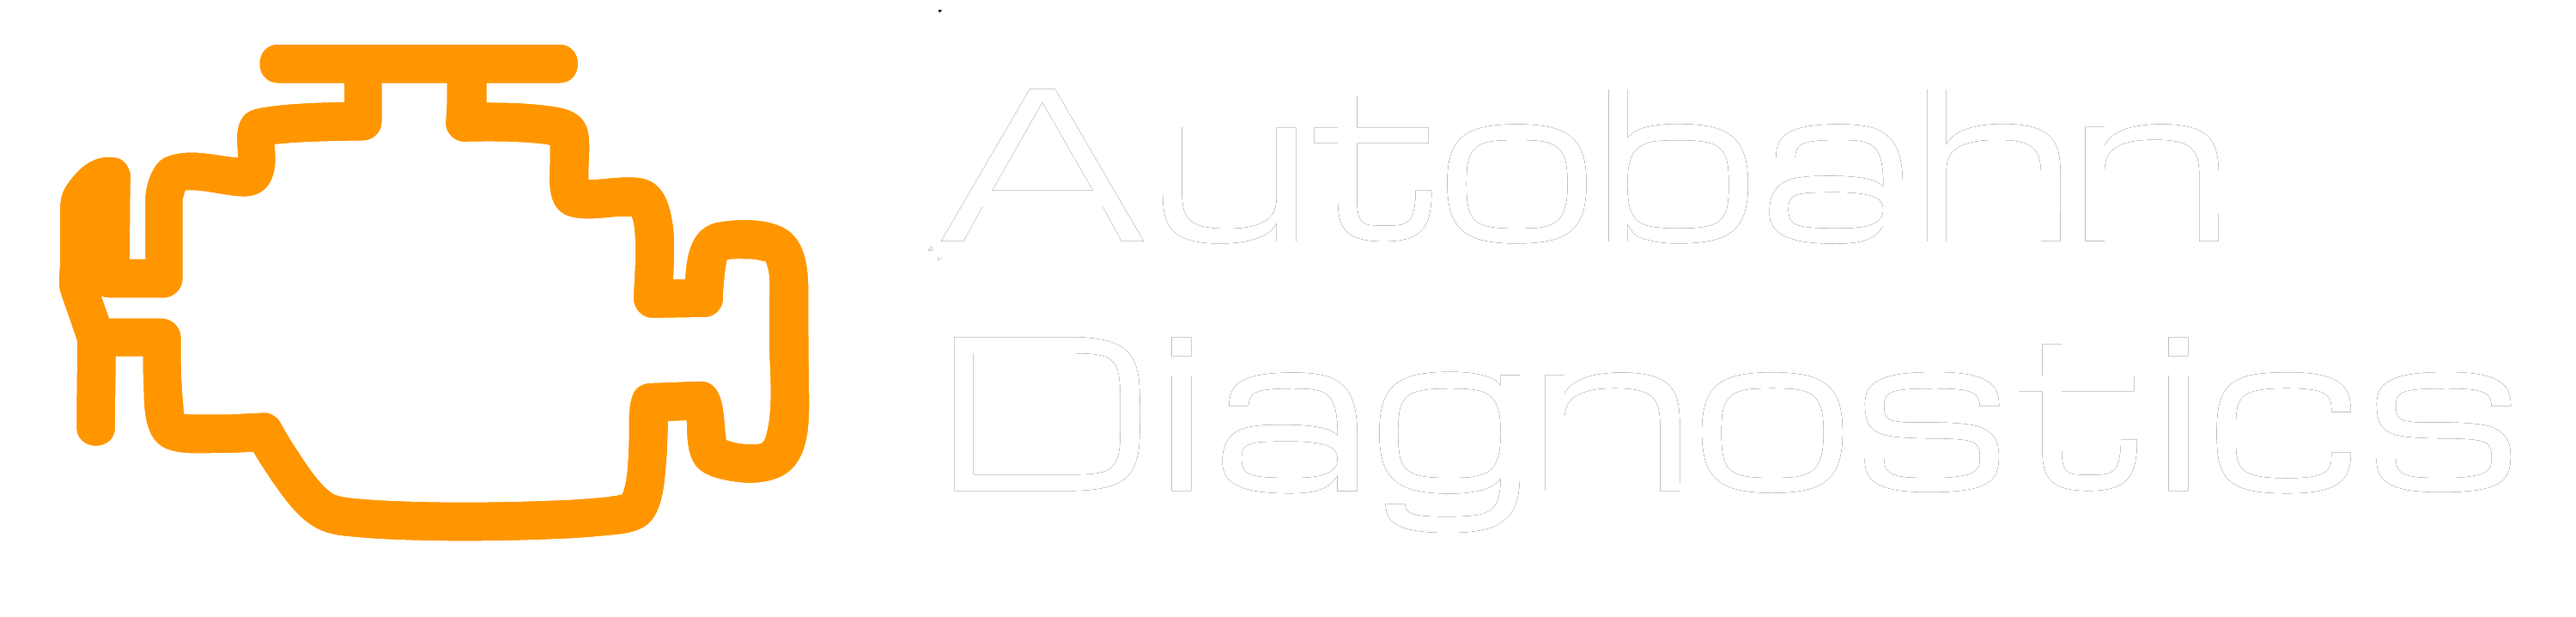 Logo of Autobahn Diagnostics